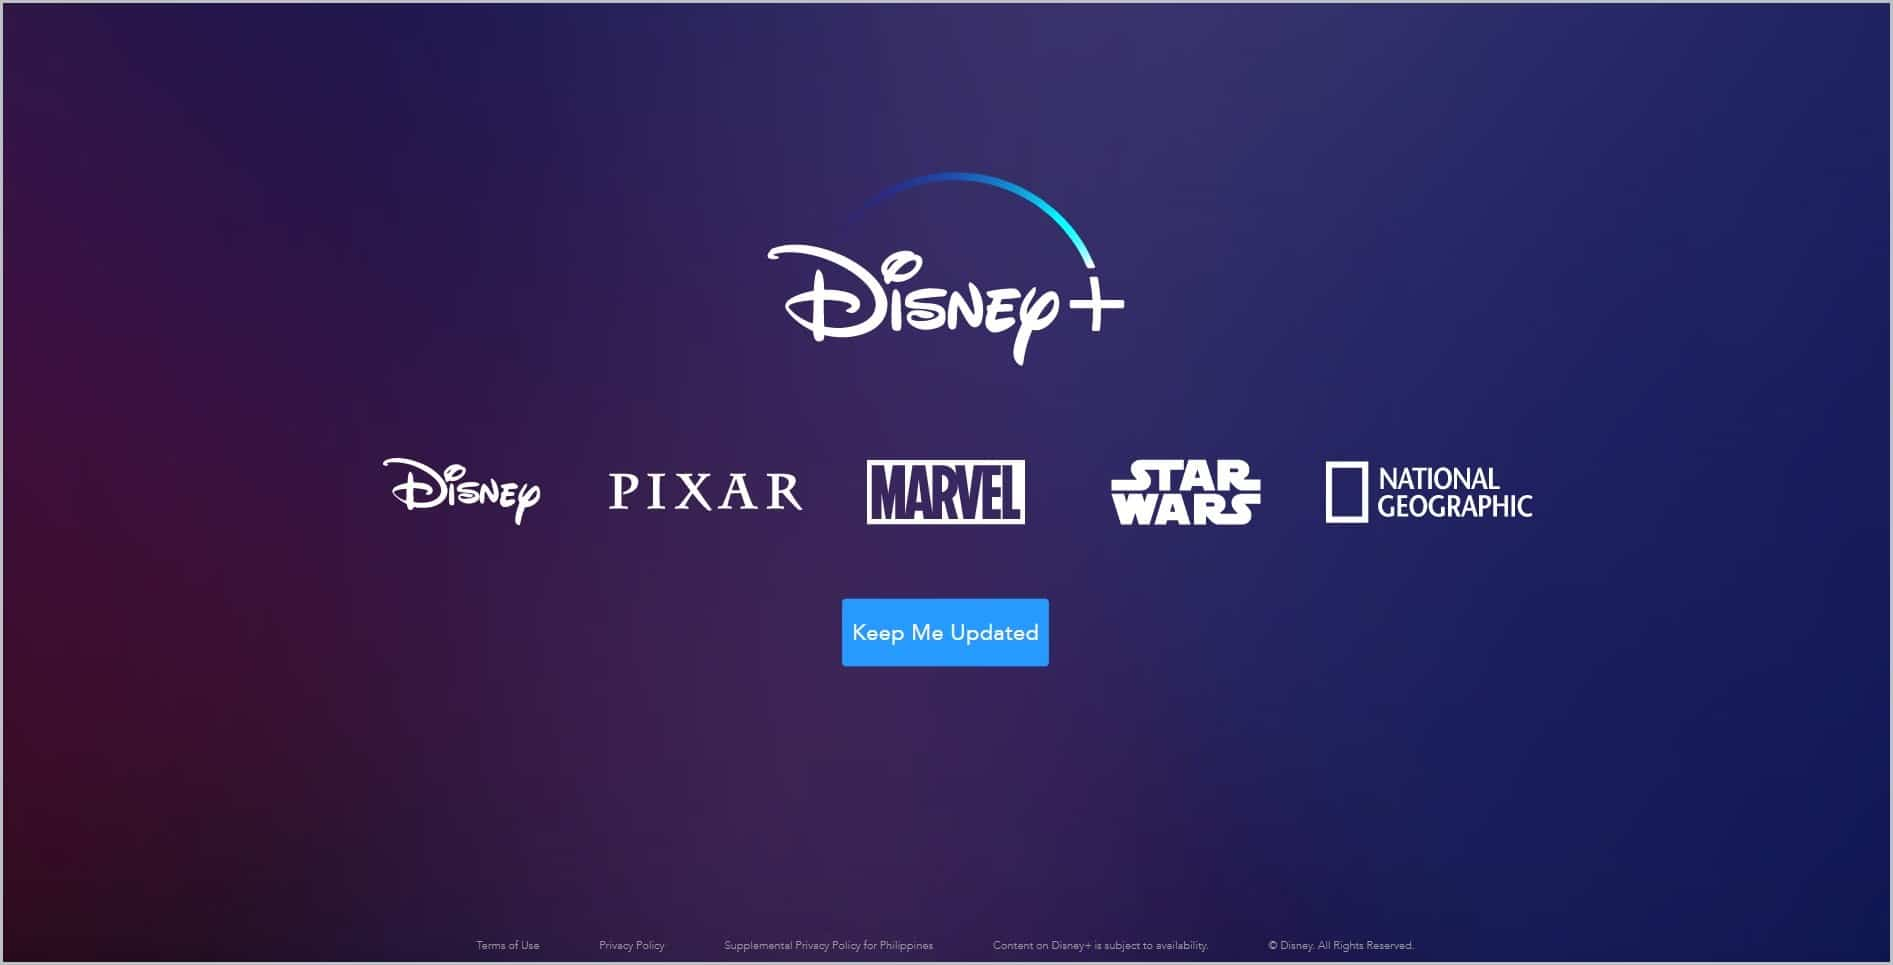 screenshot of Disney+ homepage, page is dominantly dark blue with name and logo of Disney, Pixar, Marvel, and National Geographic